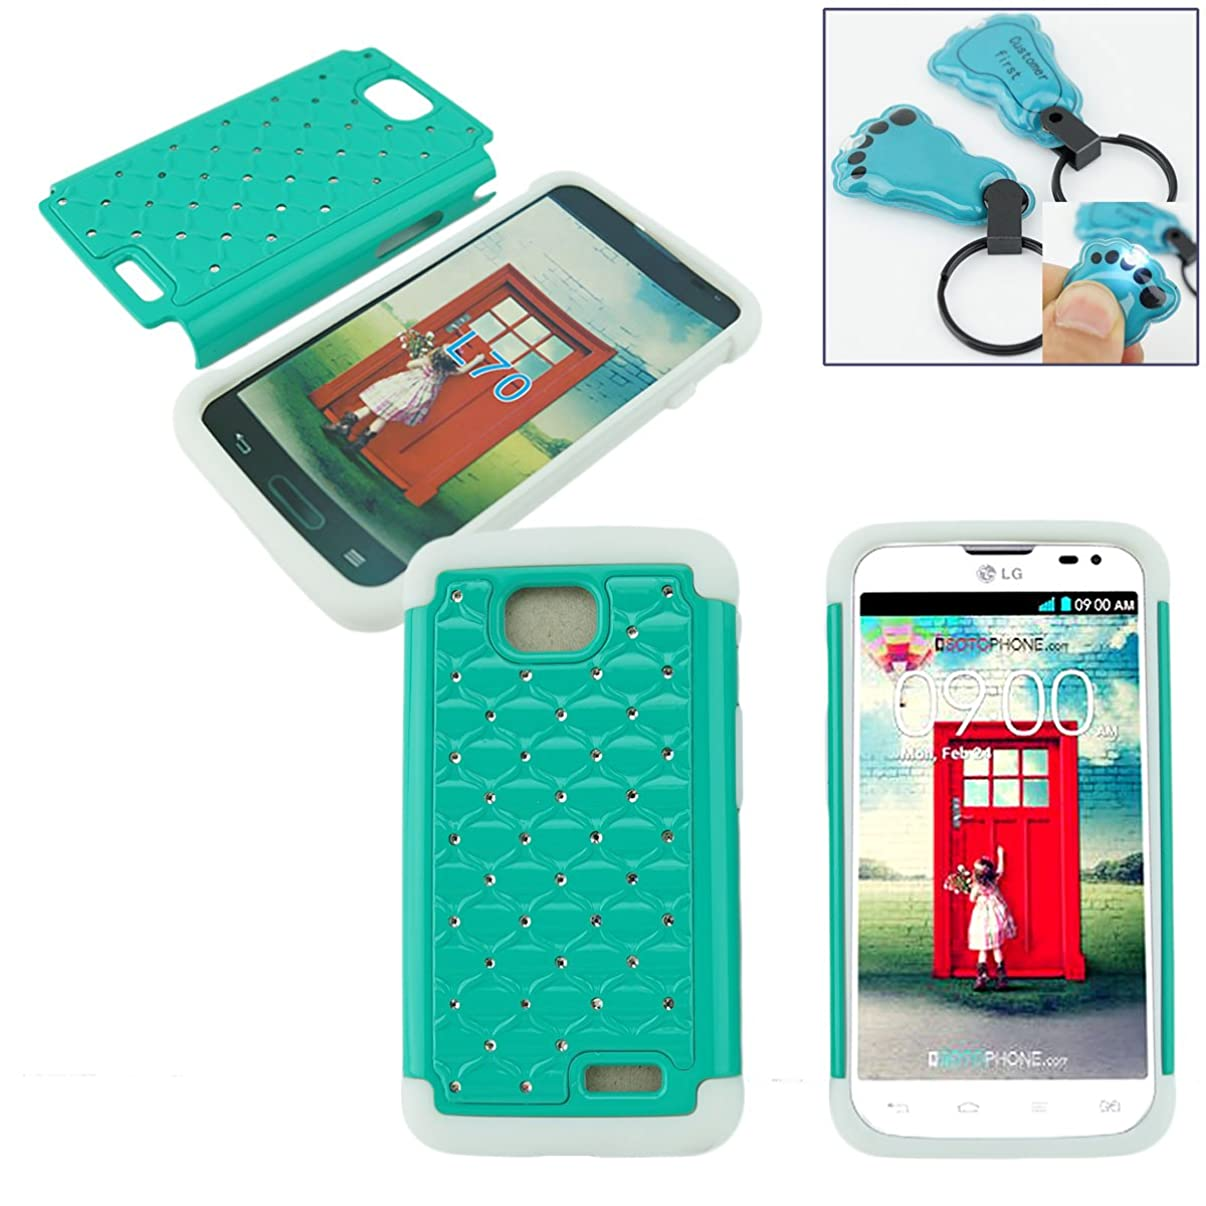 Customerfirst - Stud Diamond Studded Silicone Rubber Skin Hard Bling Case For LG ULTIMATE 2 L41C / LG REALM / LG OPTIMUS L70 - Free Flash Light Key Chain (D TEAL WHITE)